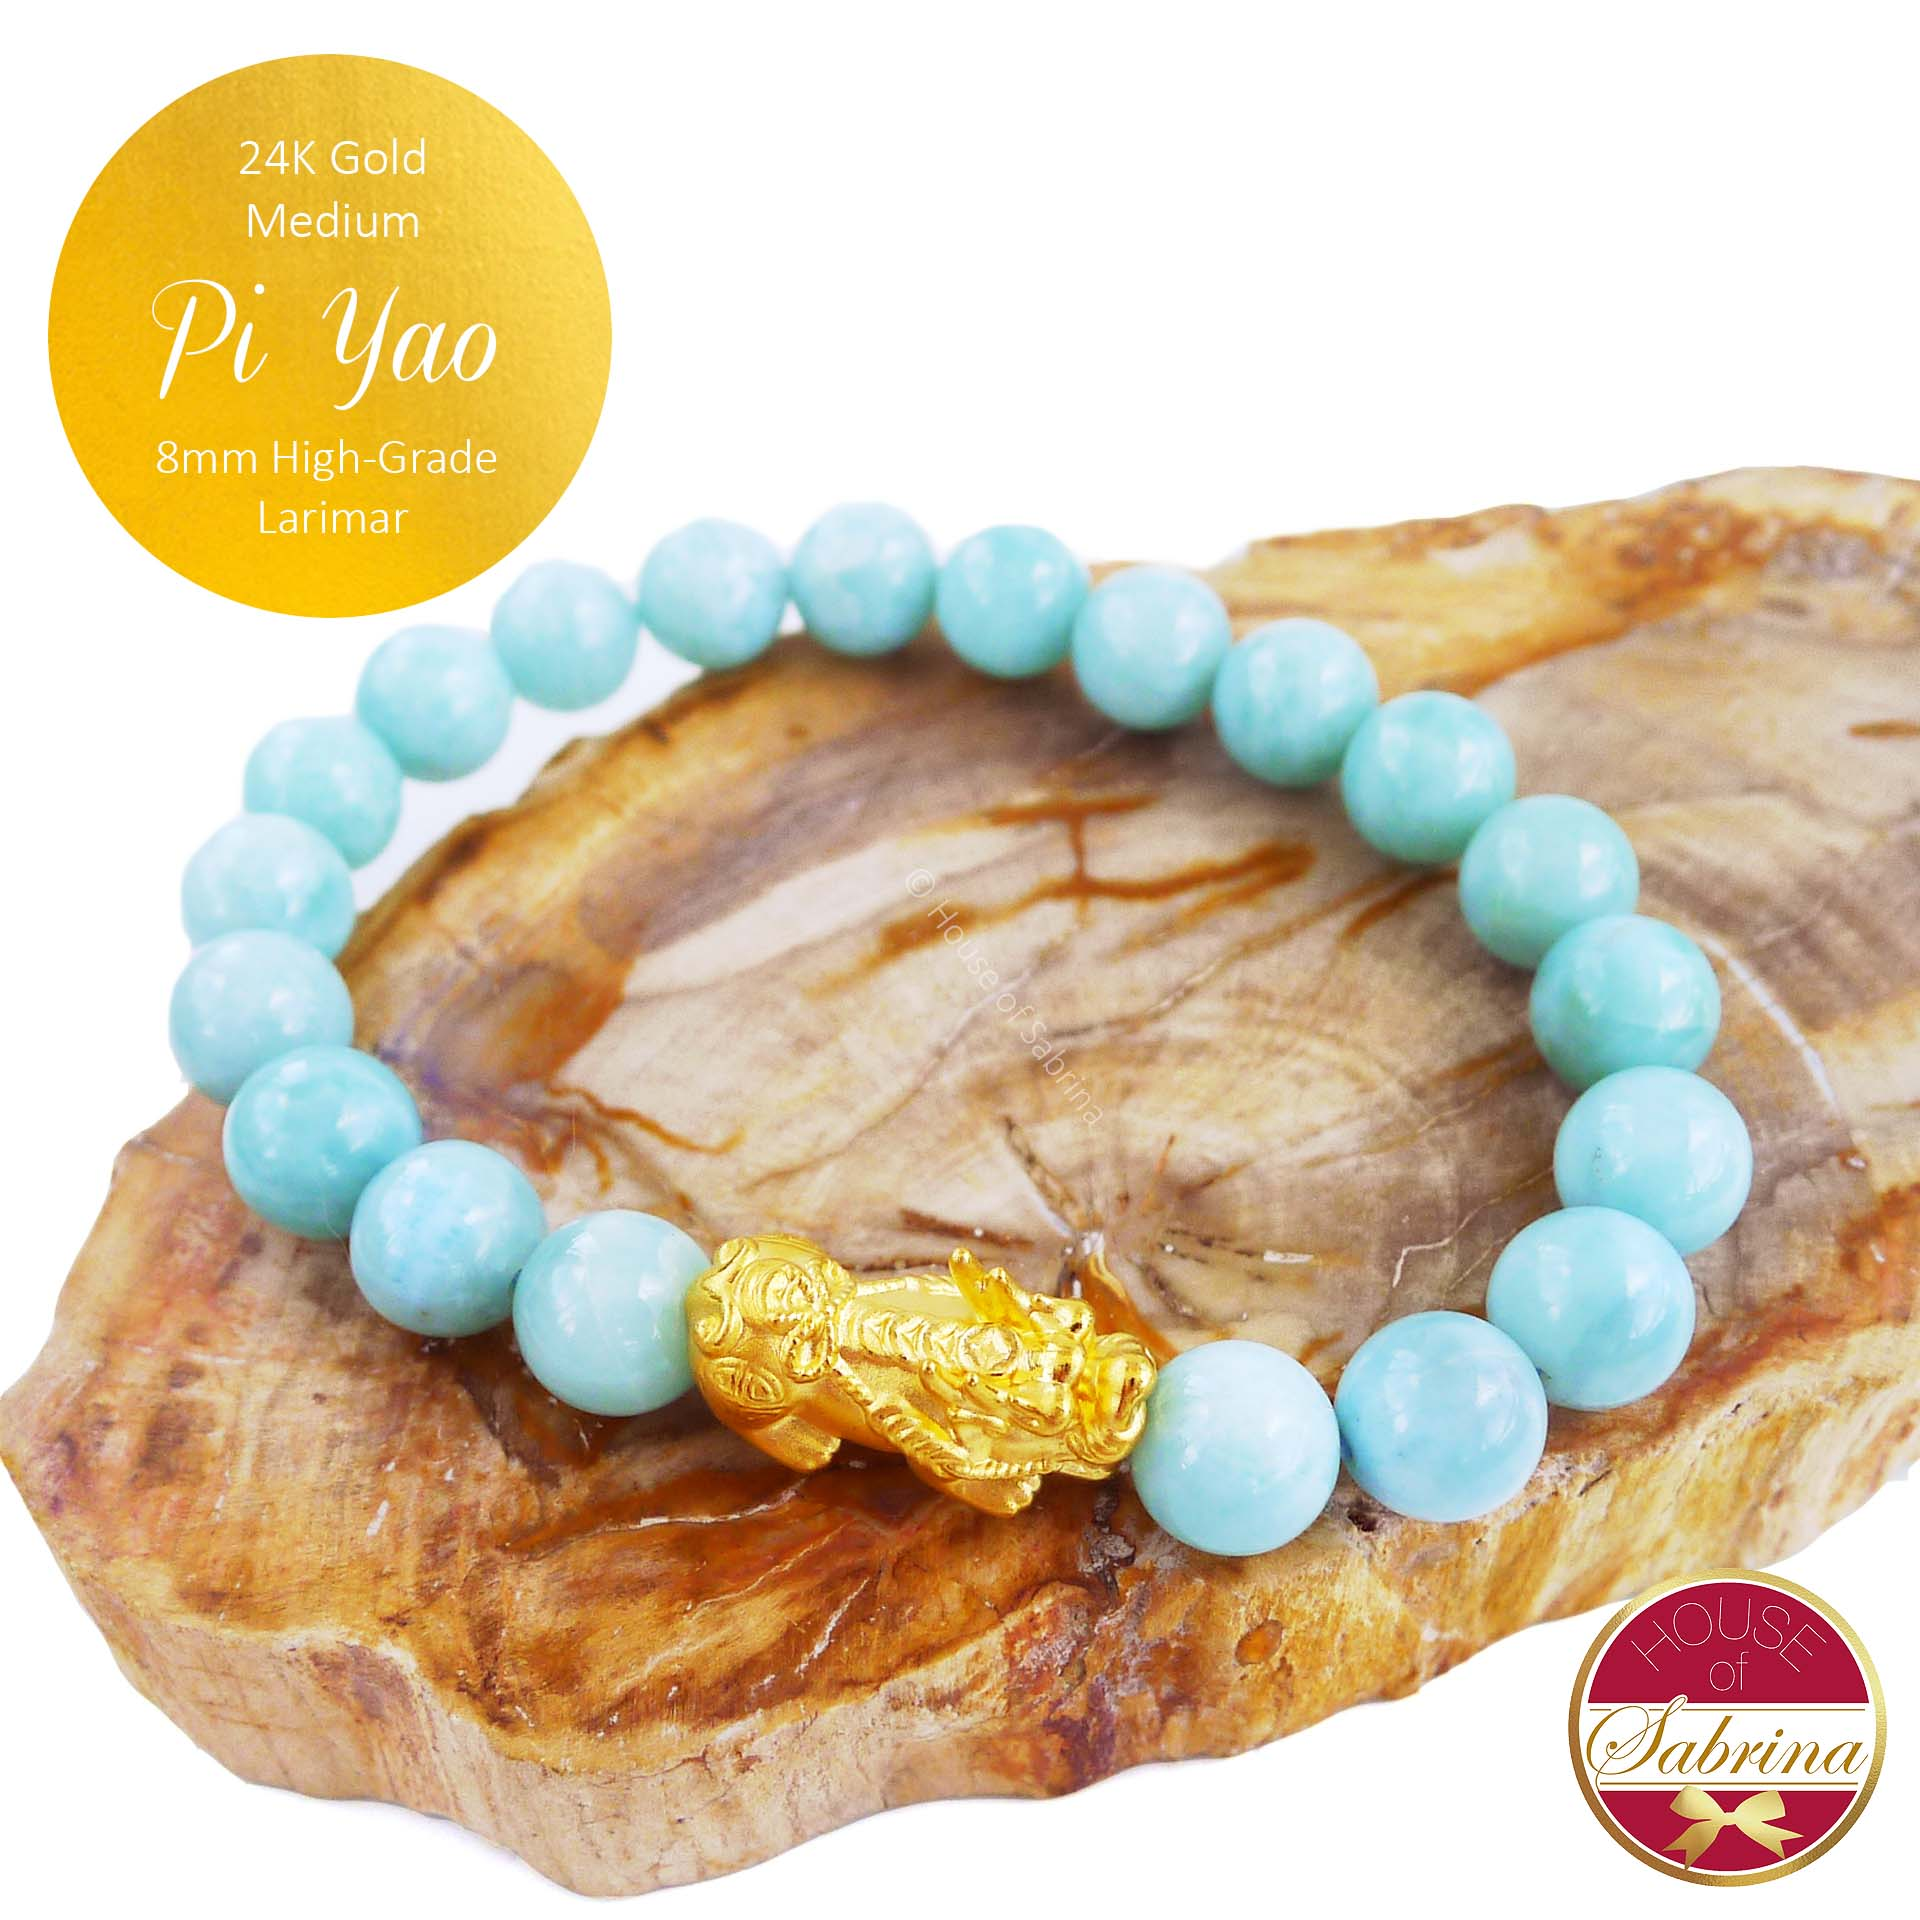 24K Gold Medium Pi Yao on High Grade Larimar Gemstone Bracelet